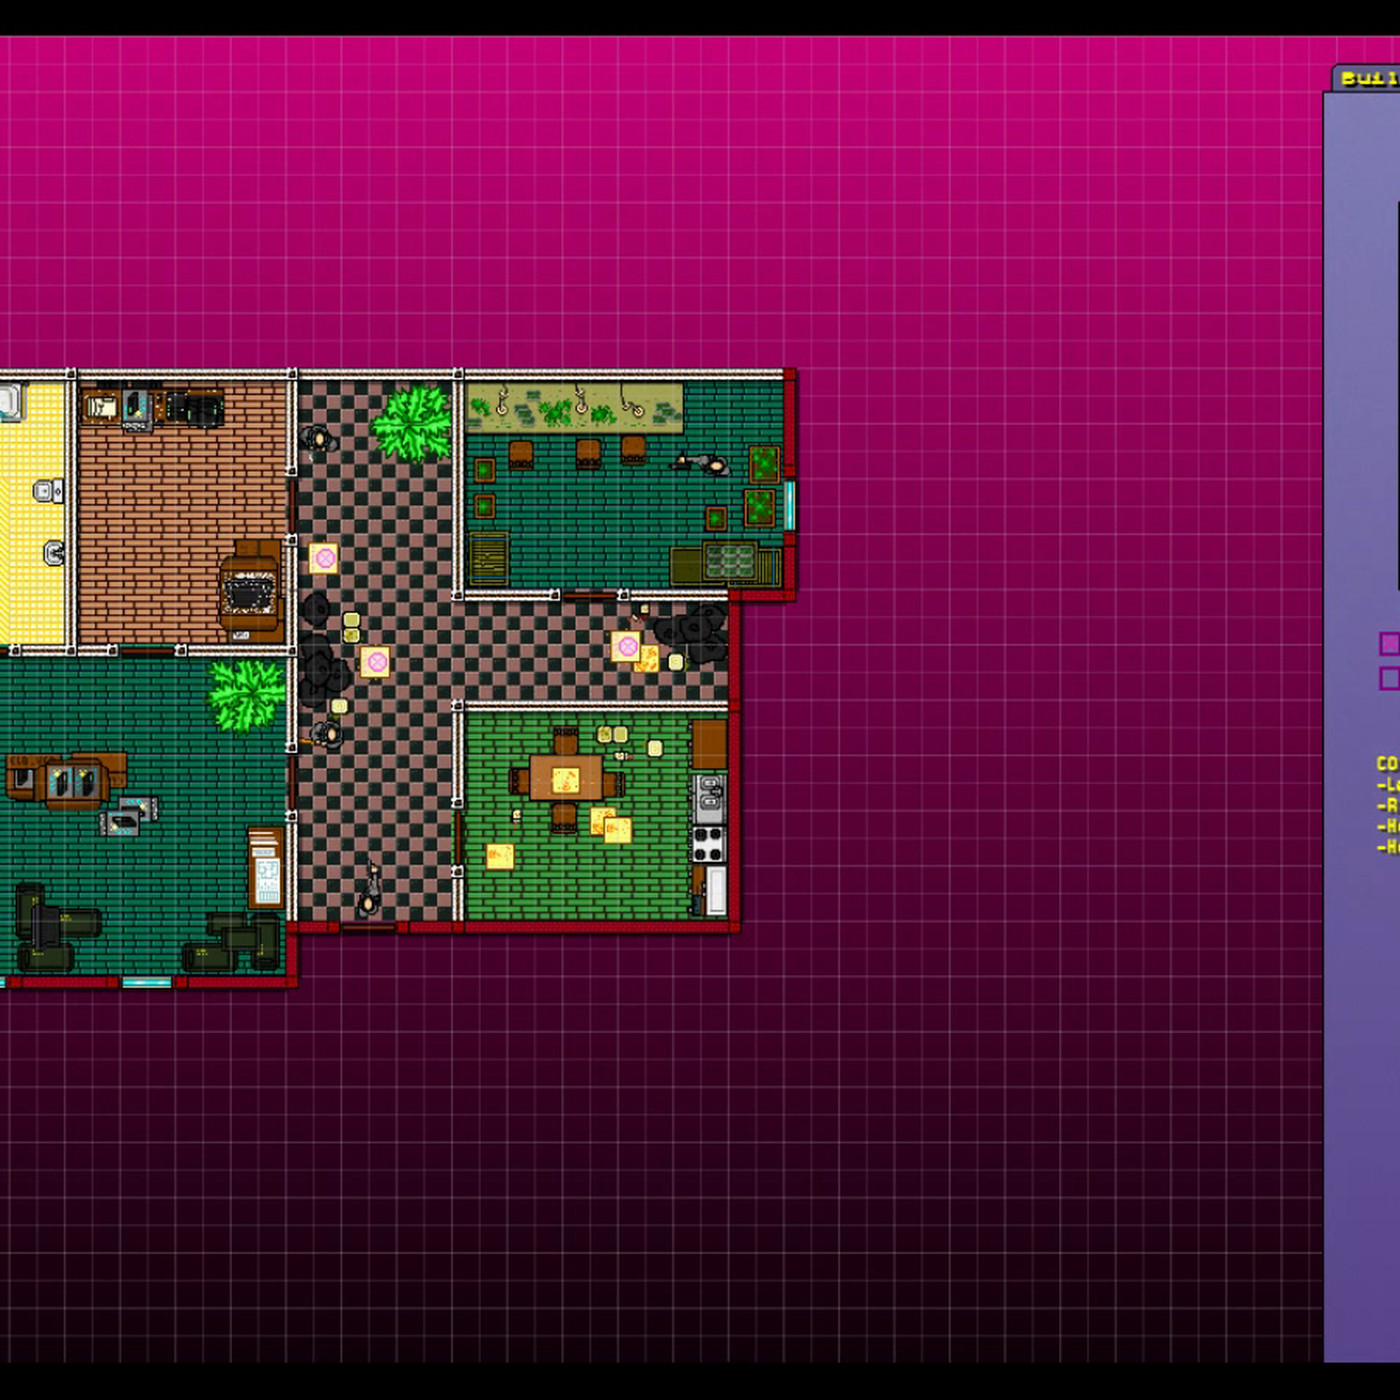 Hotline Miami 2's level editor will let players create and share